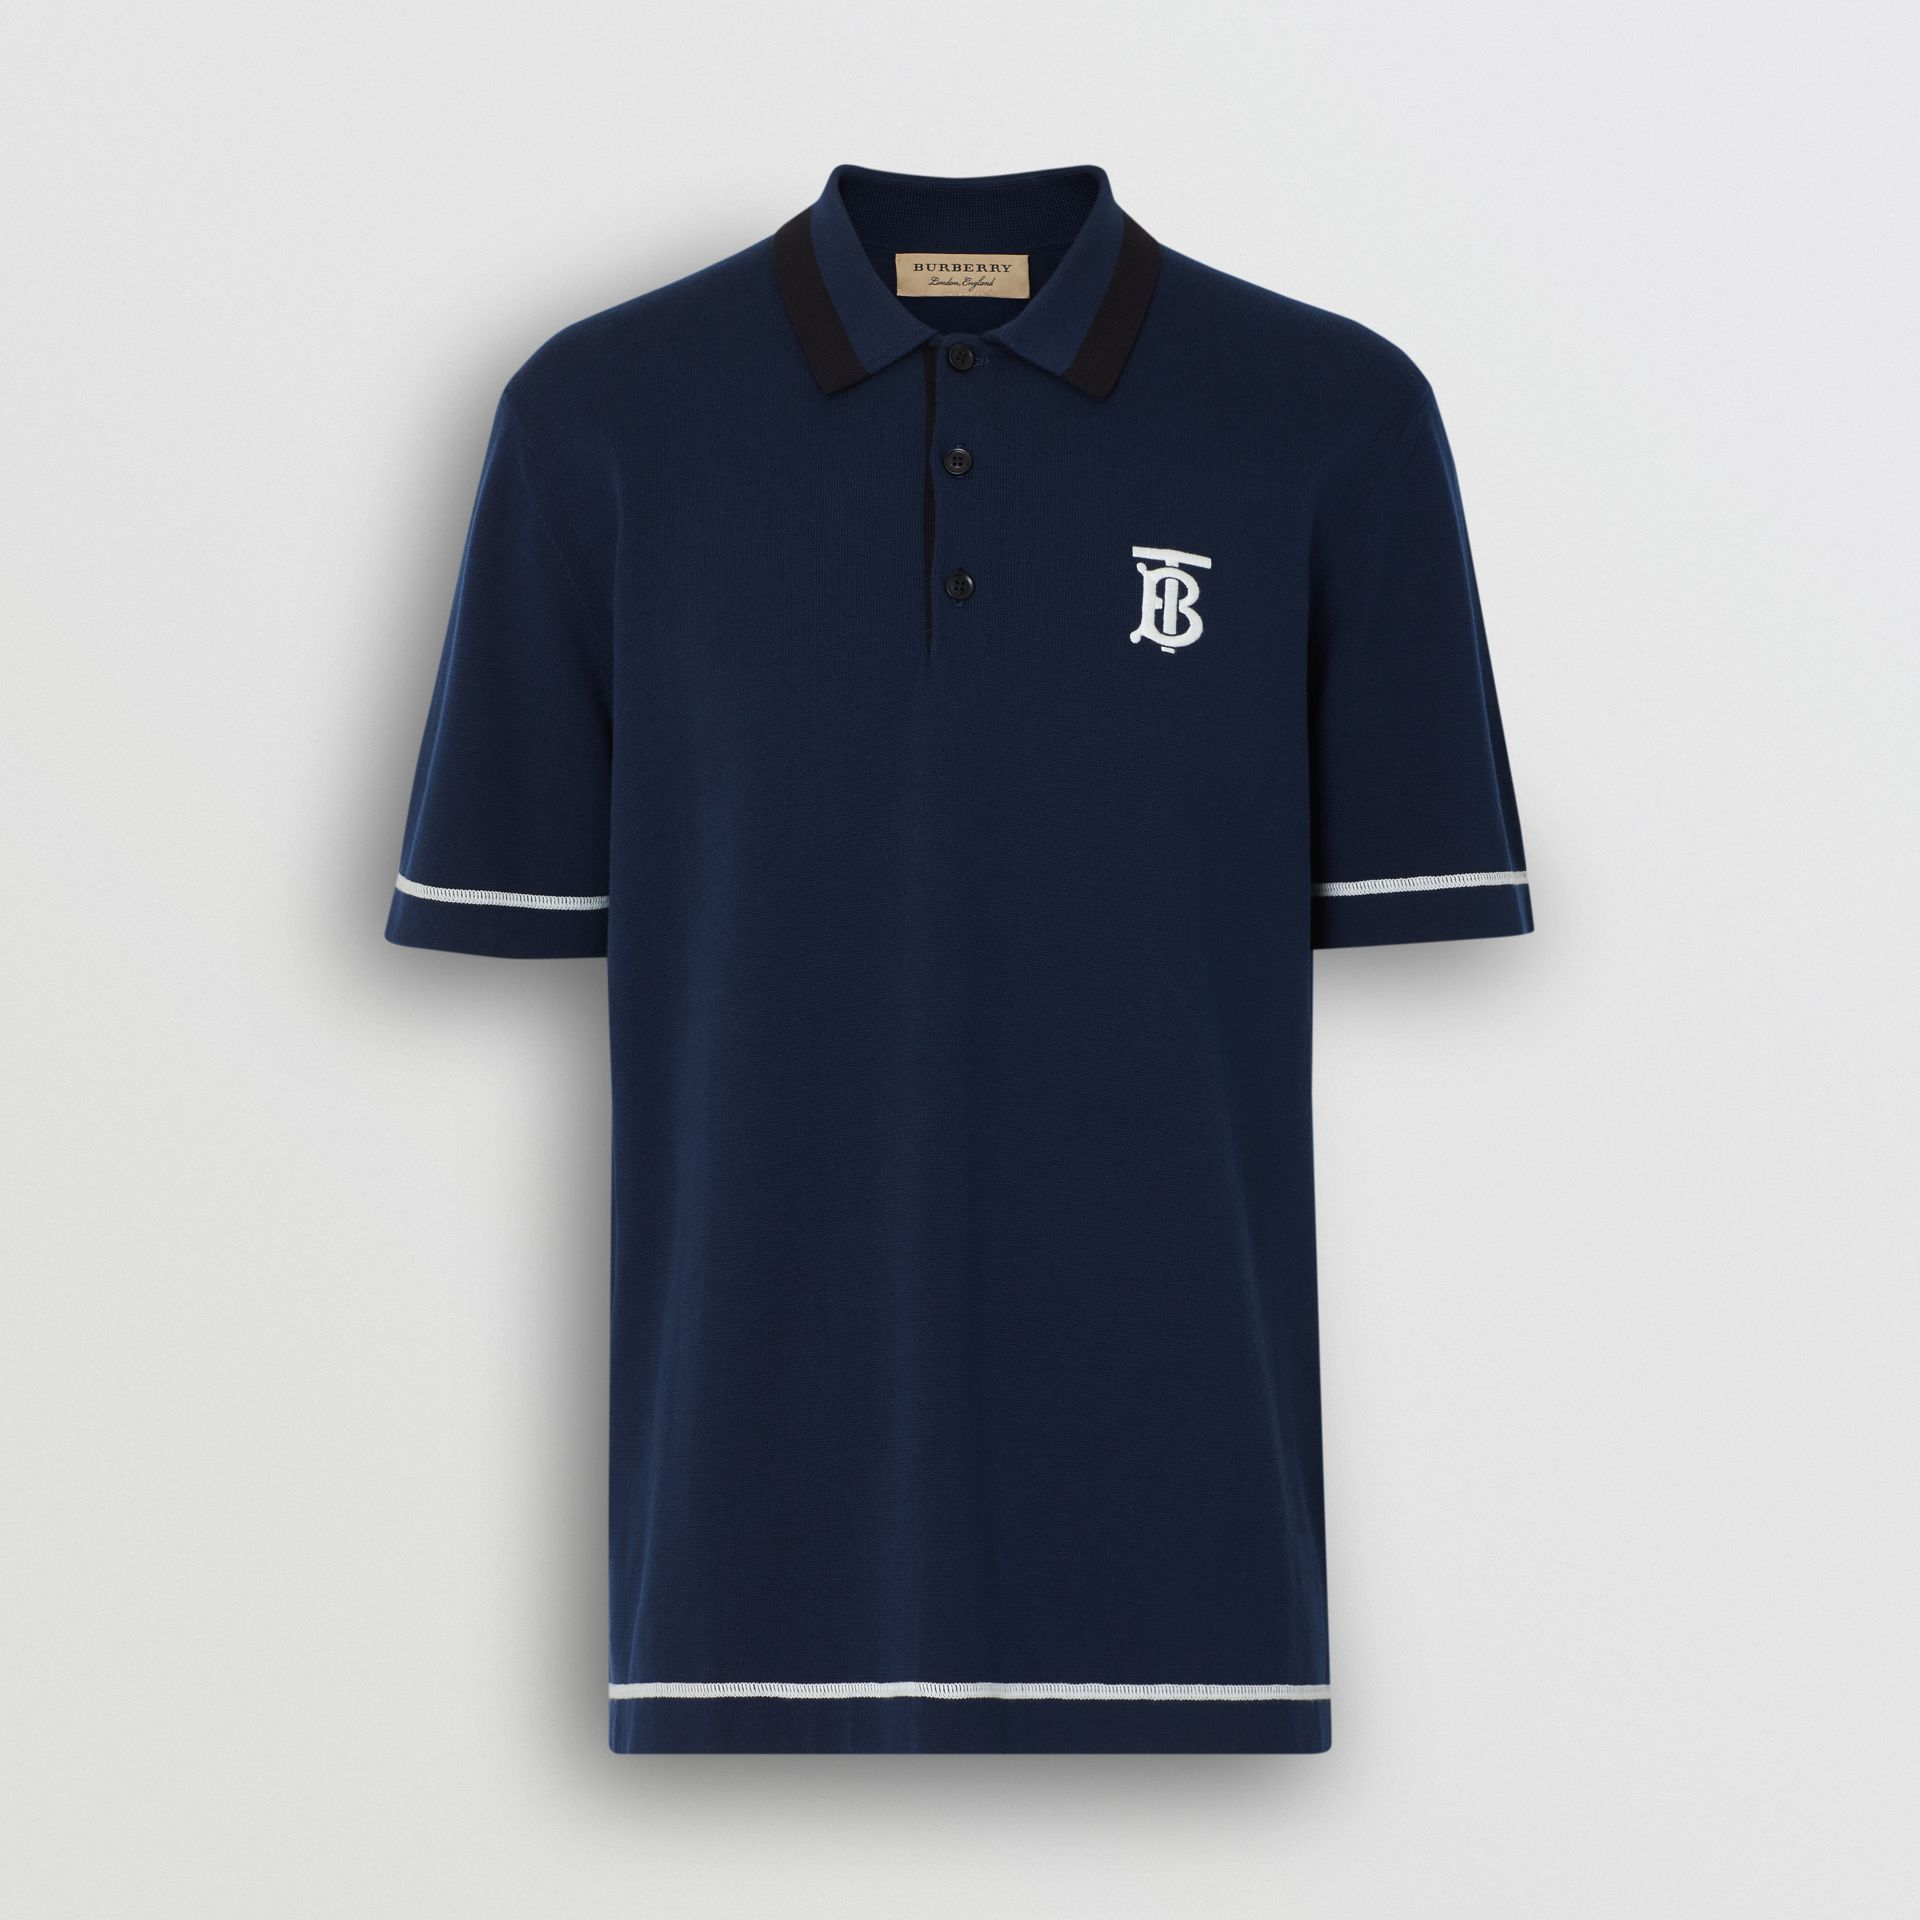 Monogram Motif Tipped Cotton Polo Shirt in Navy - Men | Burberry Singapore - gallery image 3